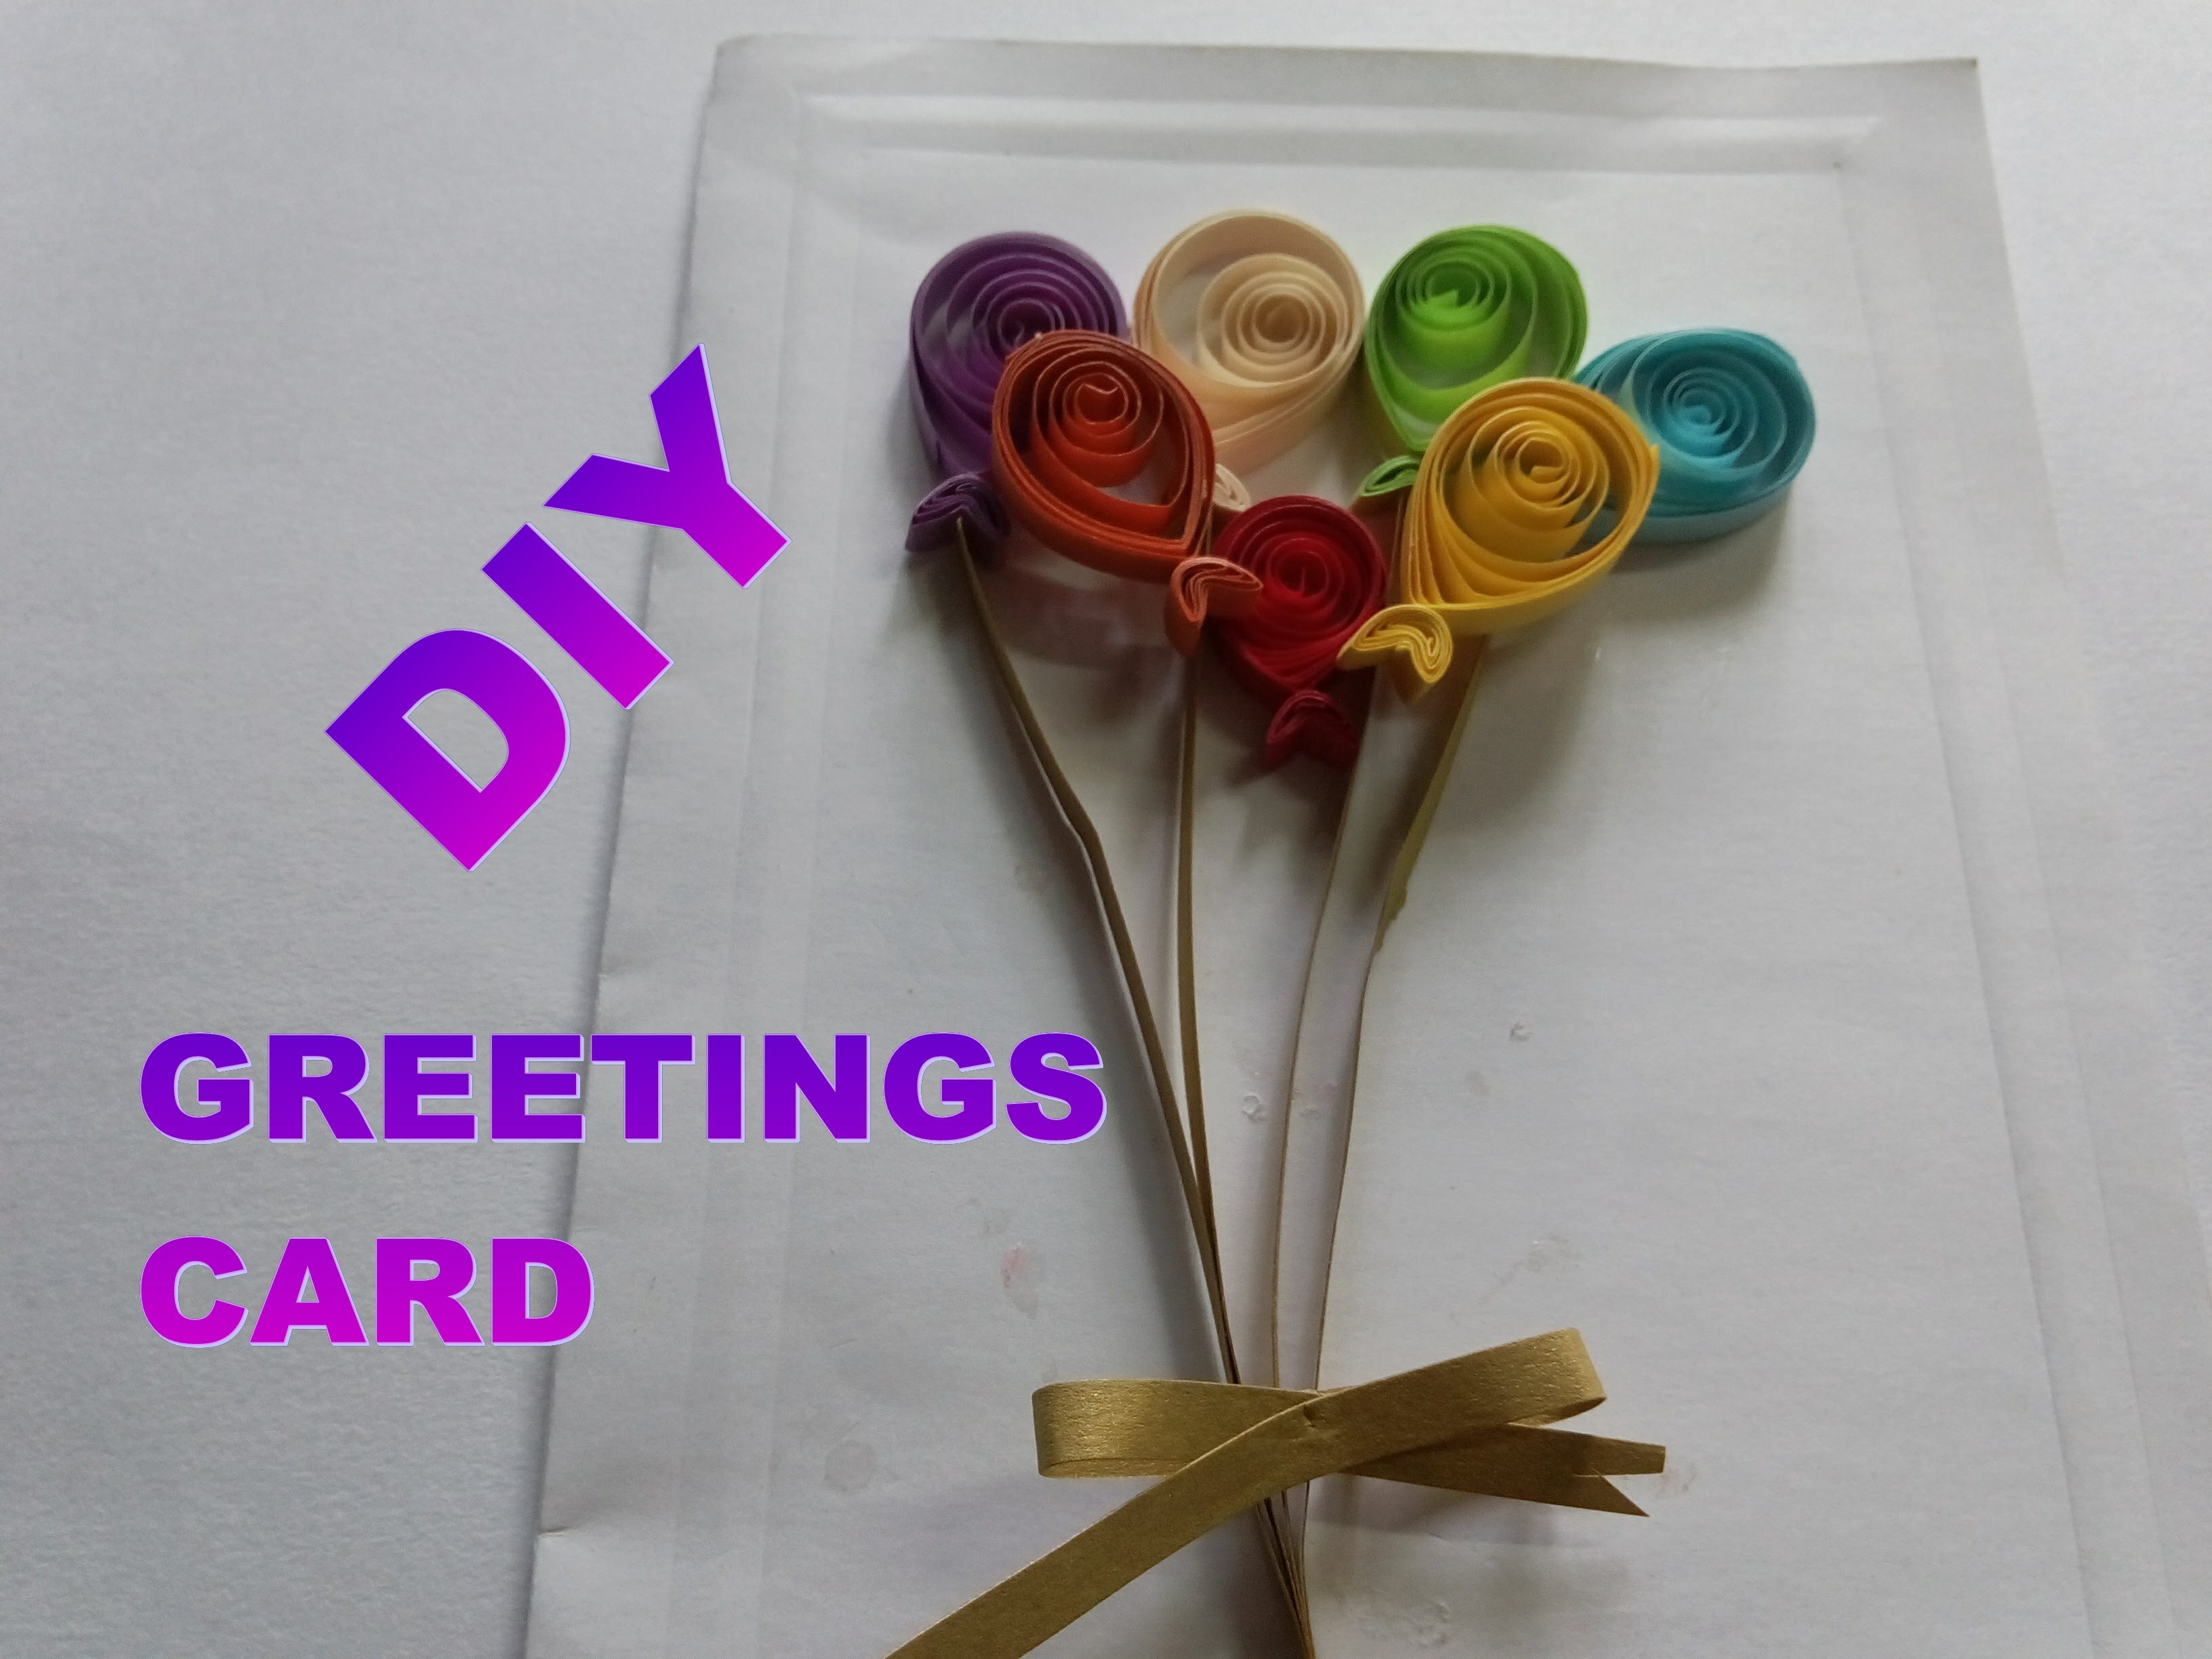 DIY PAPER QUILLING ART AND CRAFT - HOW TO MAKE BALLOONS GREETINGS CARD II SUMITA'S QUILLING ART